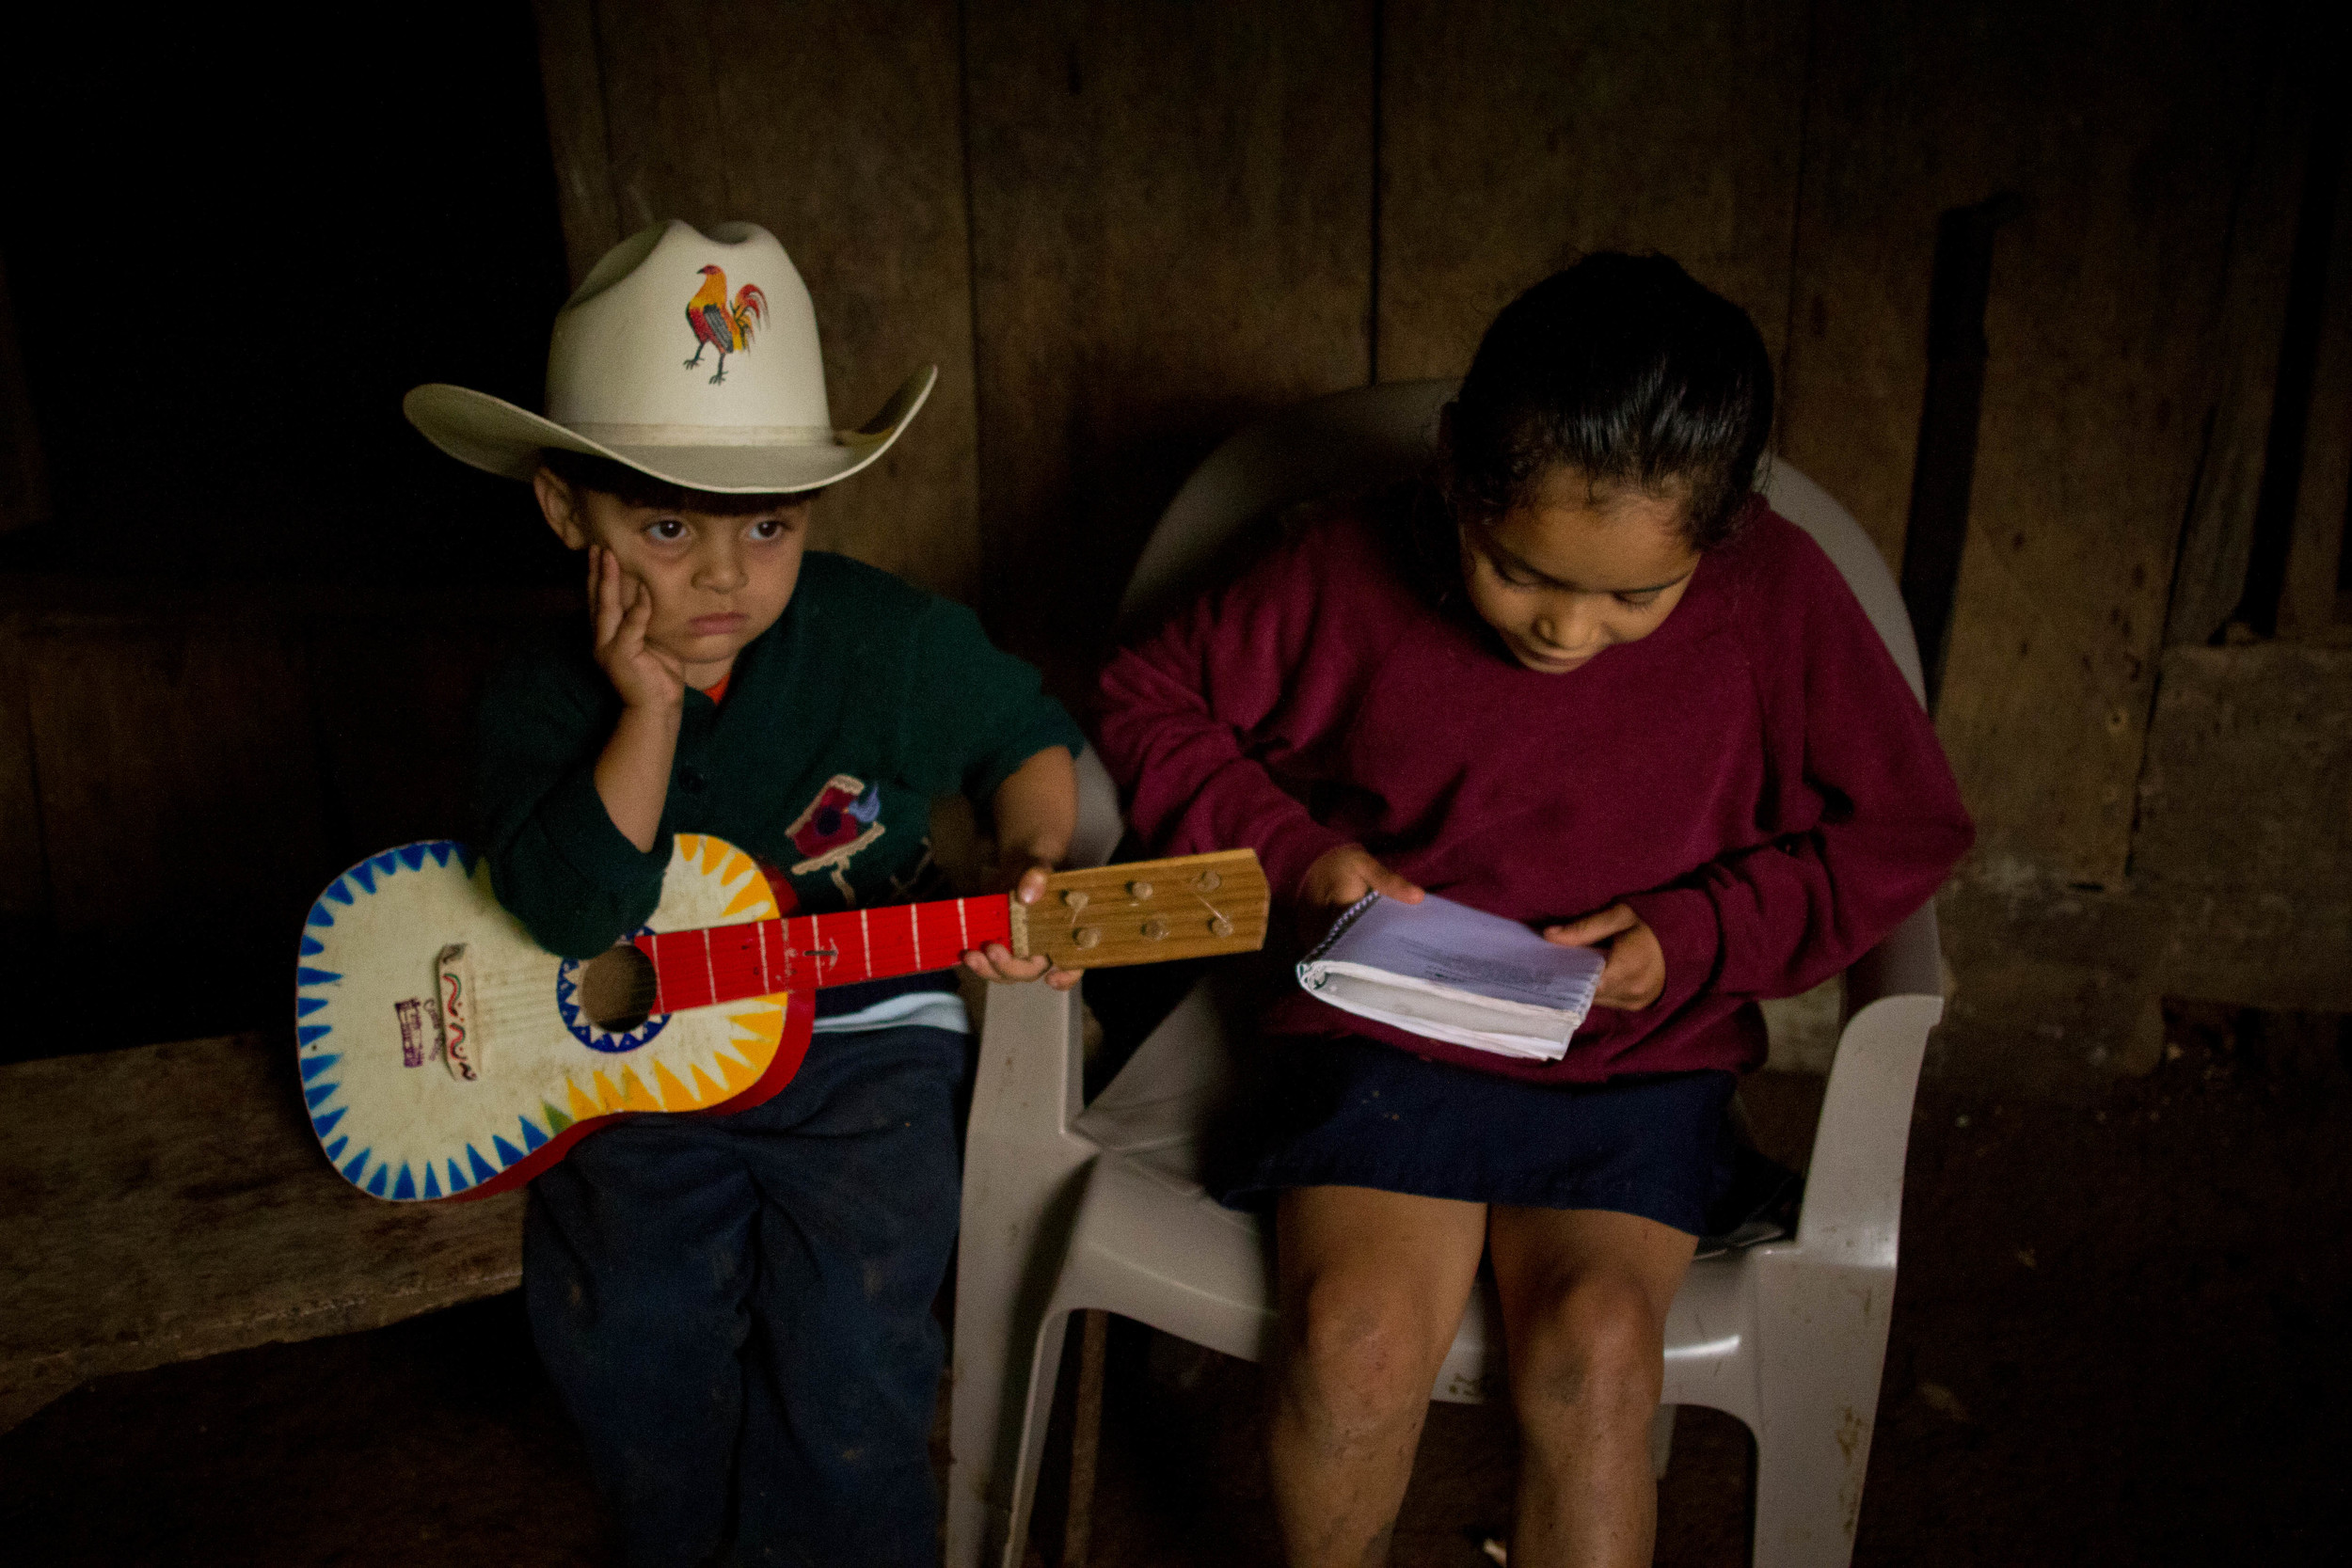 ​Elder, 3, and his cousin Angela, 8, trapped beneath the porch roof on a cold, rainy day in El Roblar, Nicaragua.